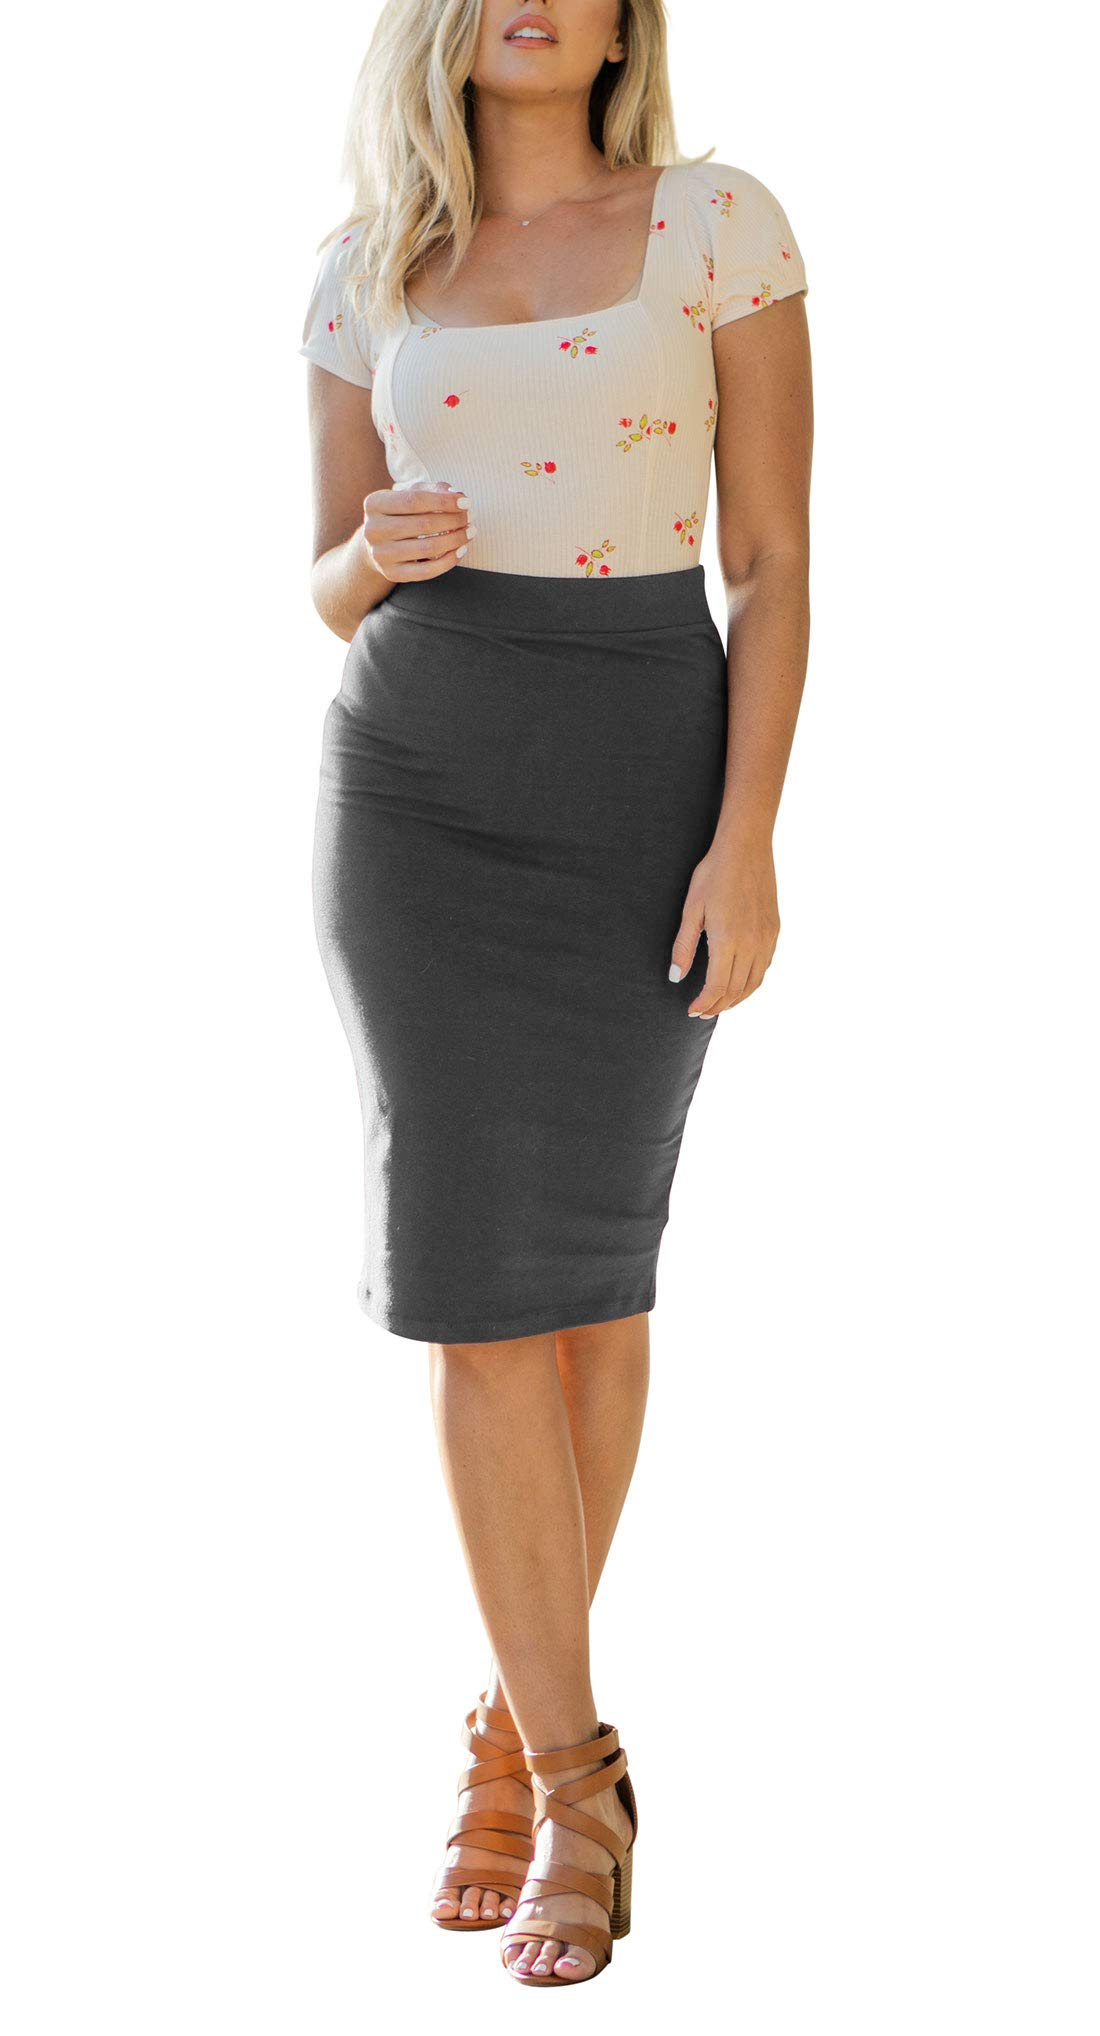 NioBe Clothing Women's High Waist Bodycon Midi Cotton Fitted Pencil Skirt